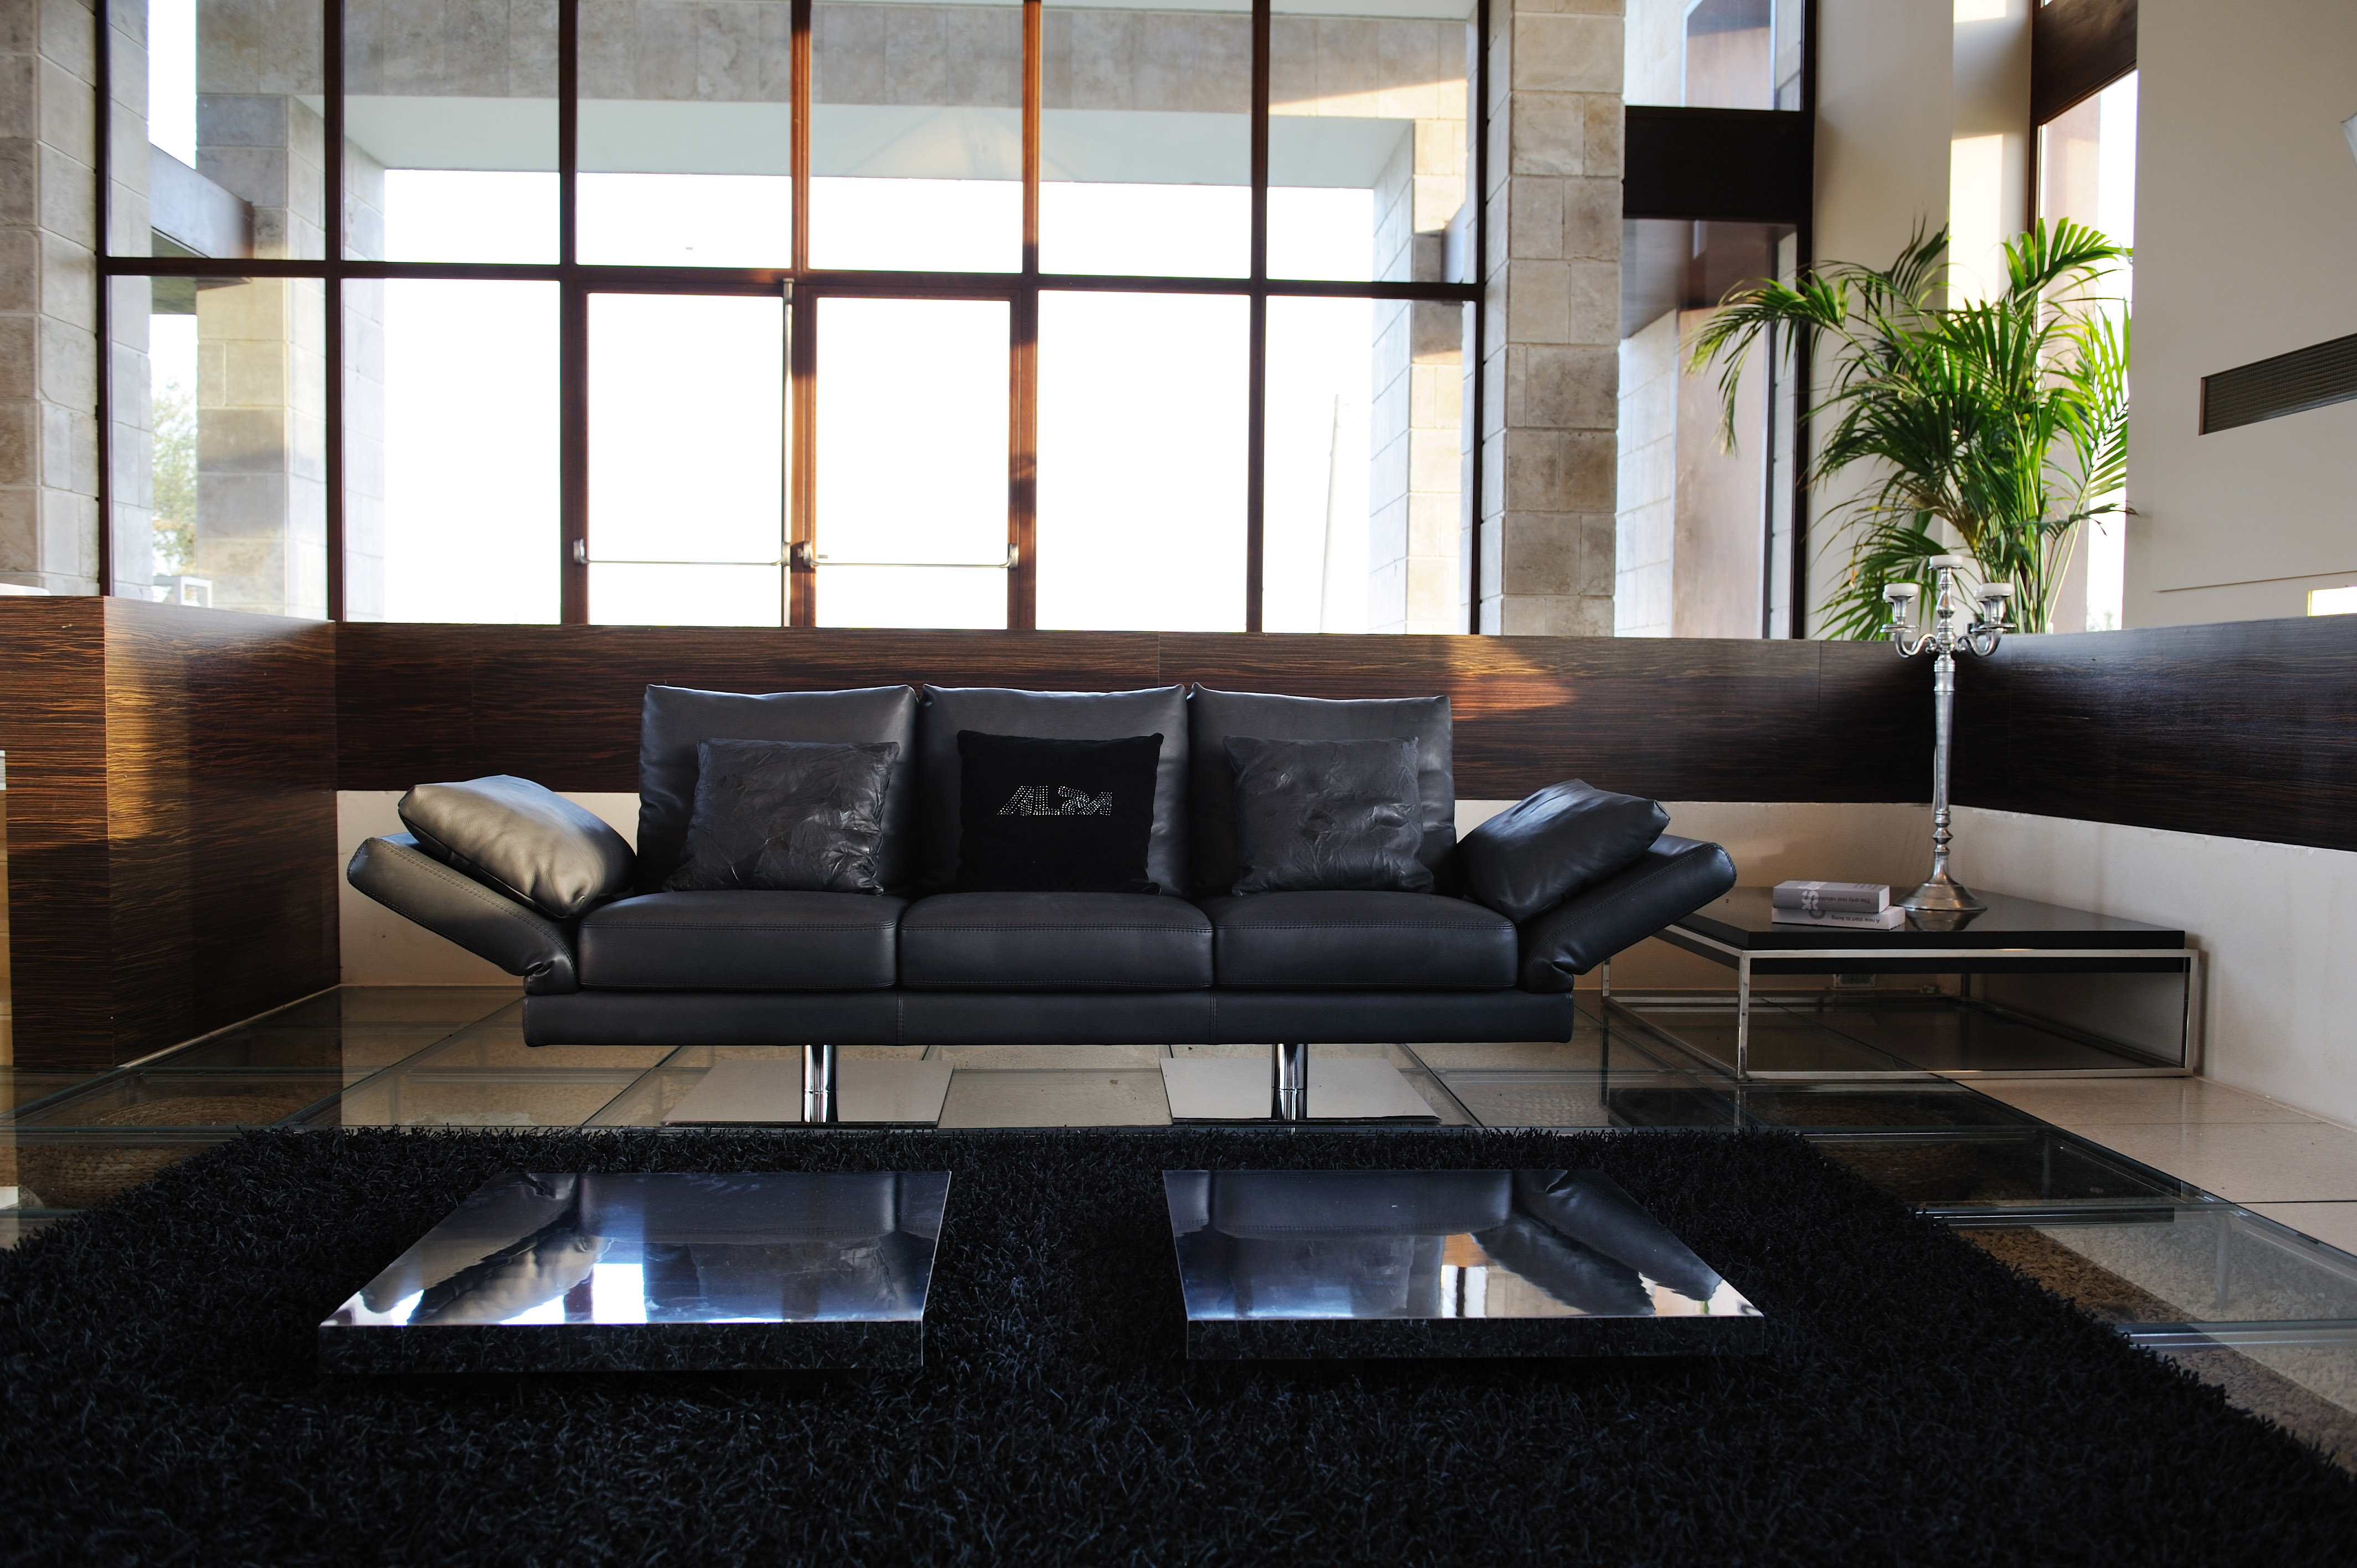 terrific black leather living room set   Black Leather Sofa Set with Adjustable Features New ...